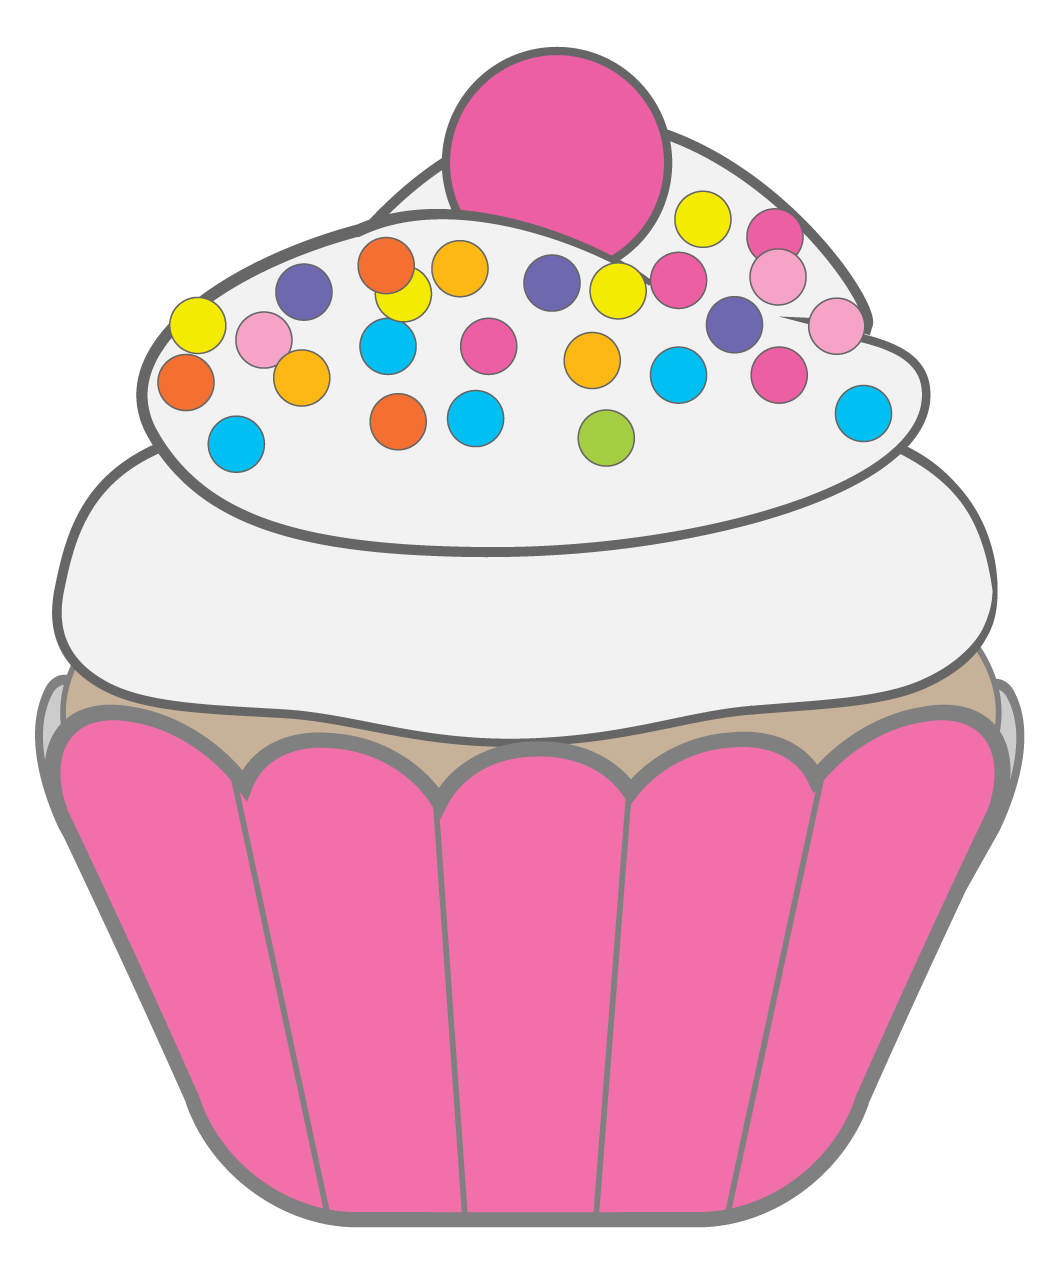 Little cupcake clipart banner download Free Color Cupcake Cliparts, Download Free Clip Art, Free Clip Art ... banner download